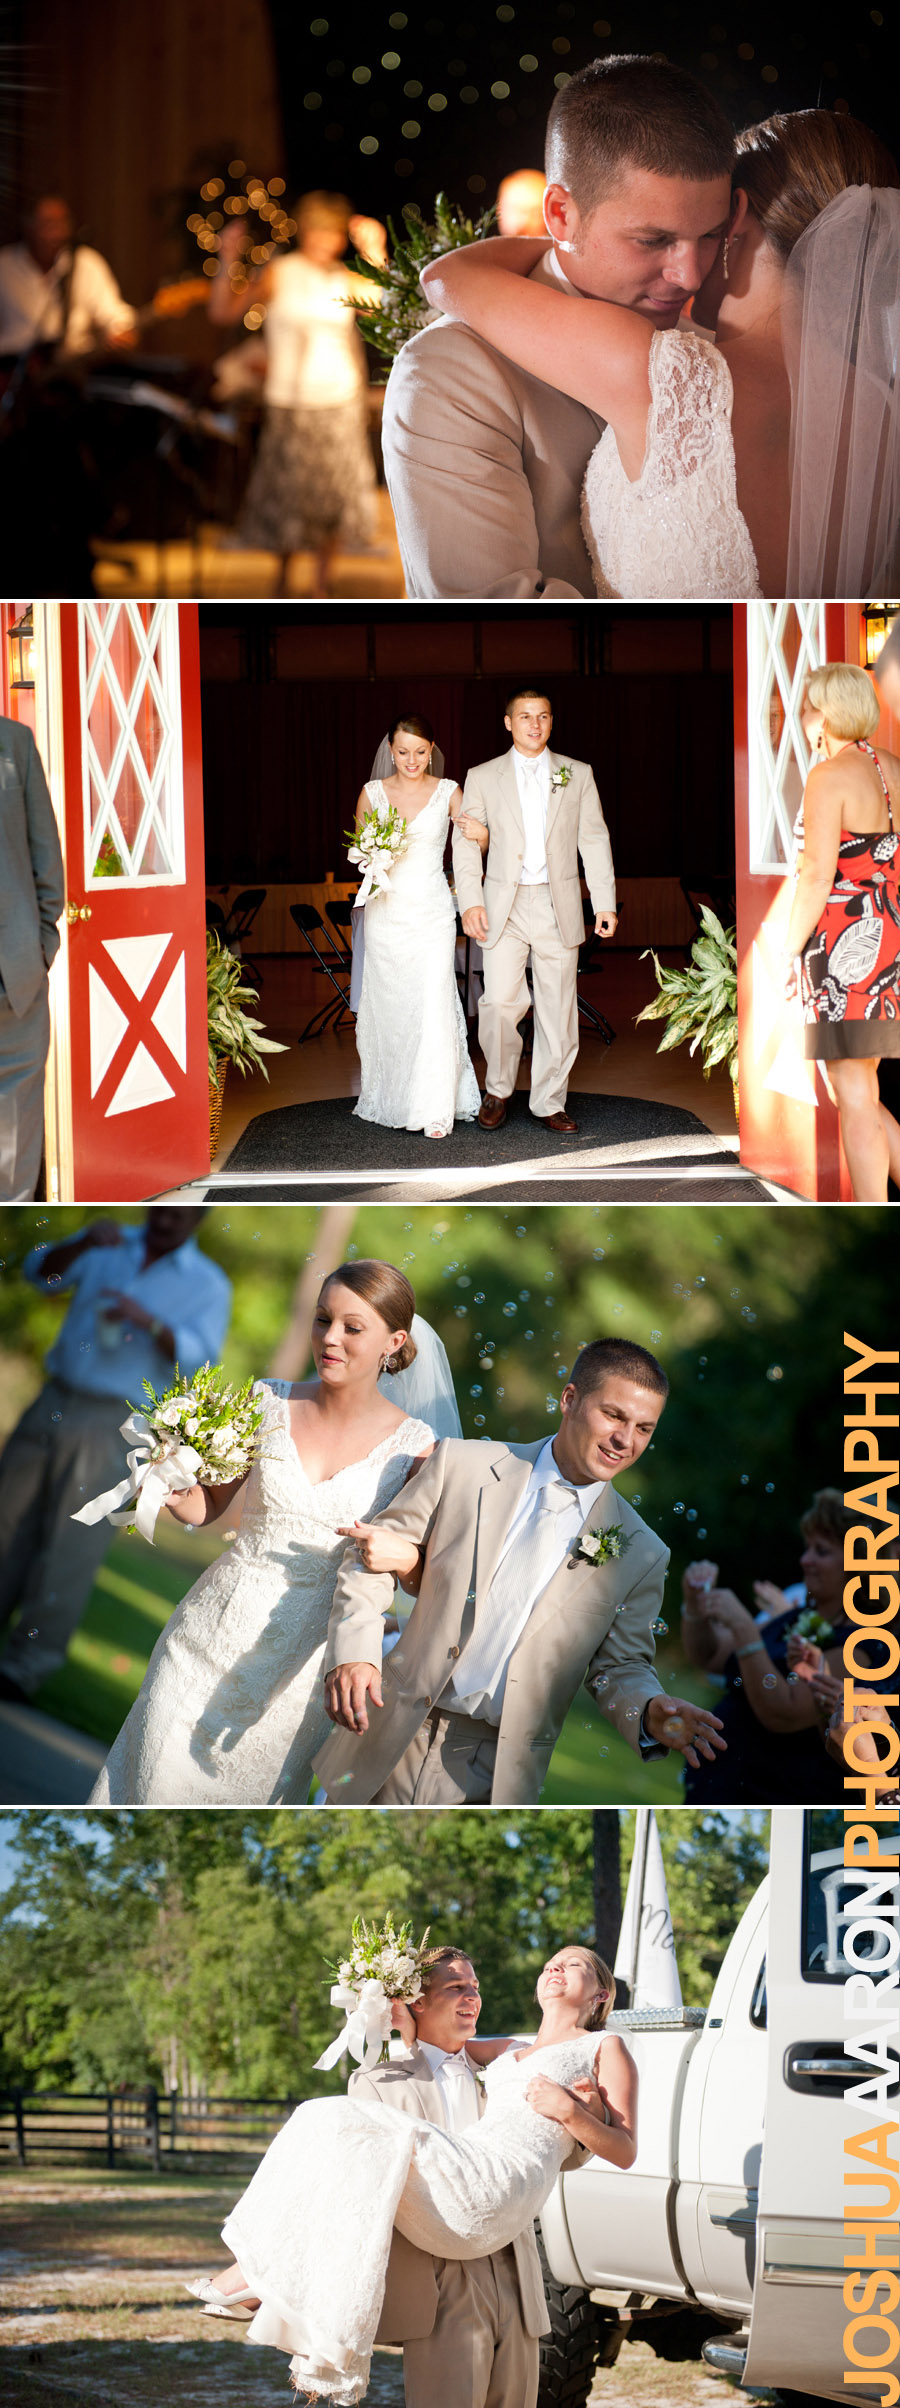 Wedding and Reception in Leesville, SC at T&S Farm